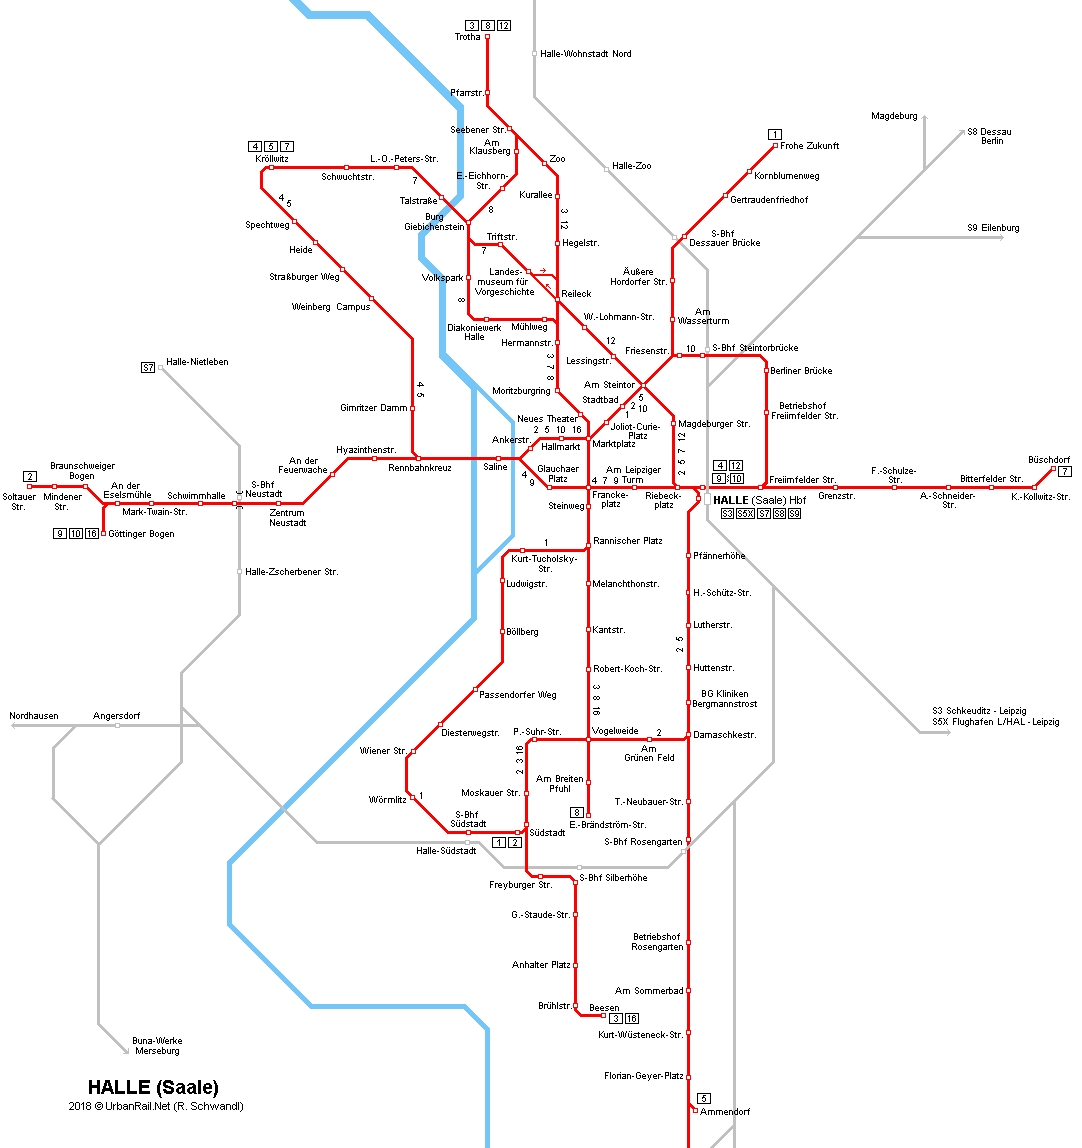 Urbanrail > Europe > Germany > Sachsen-Anhalt > Halle (Saale intended for Halle In Germany Map